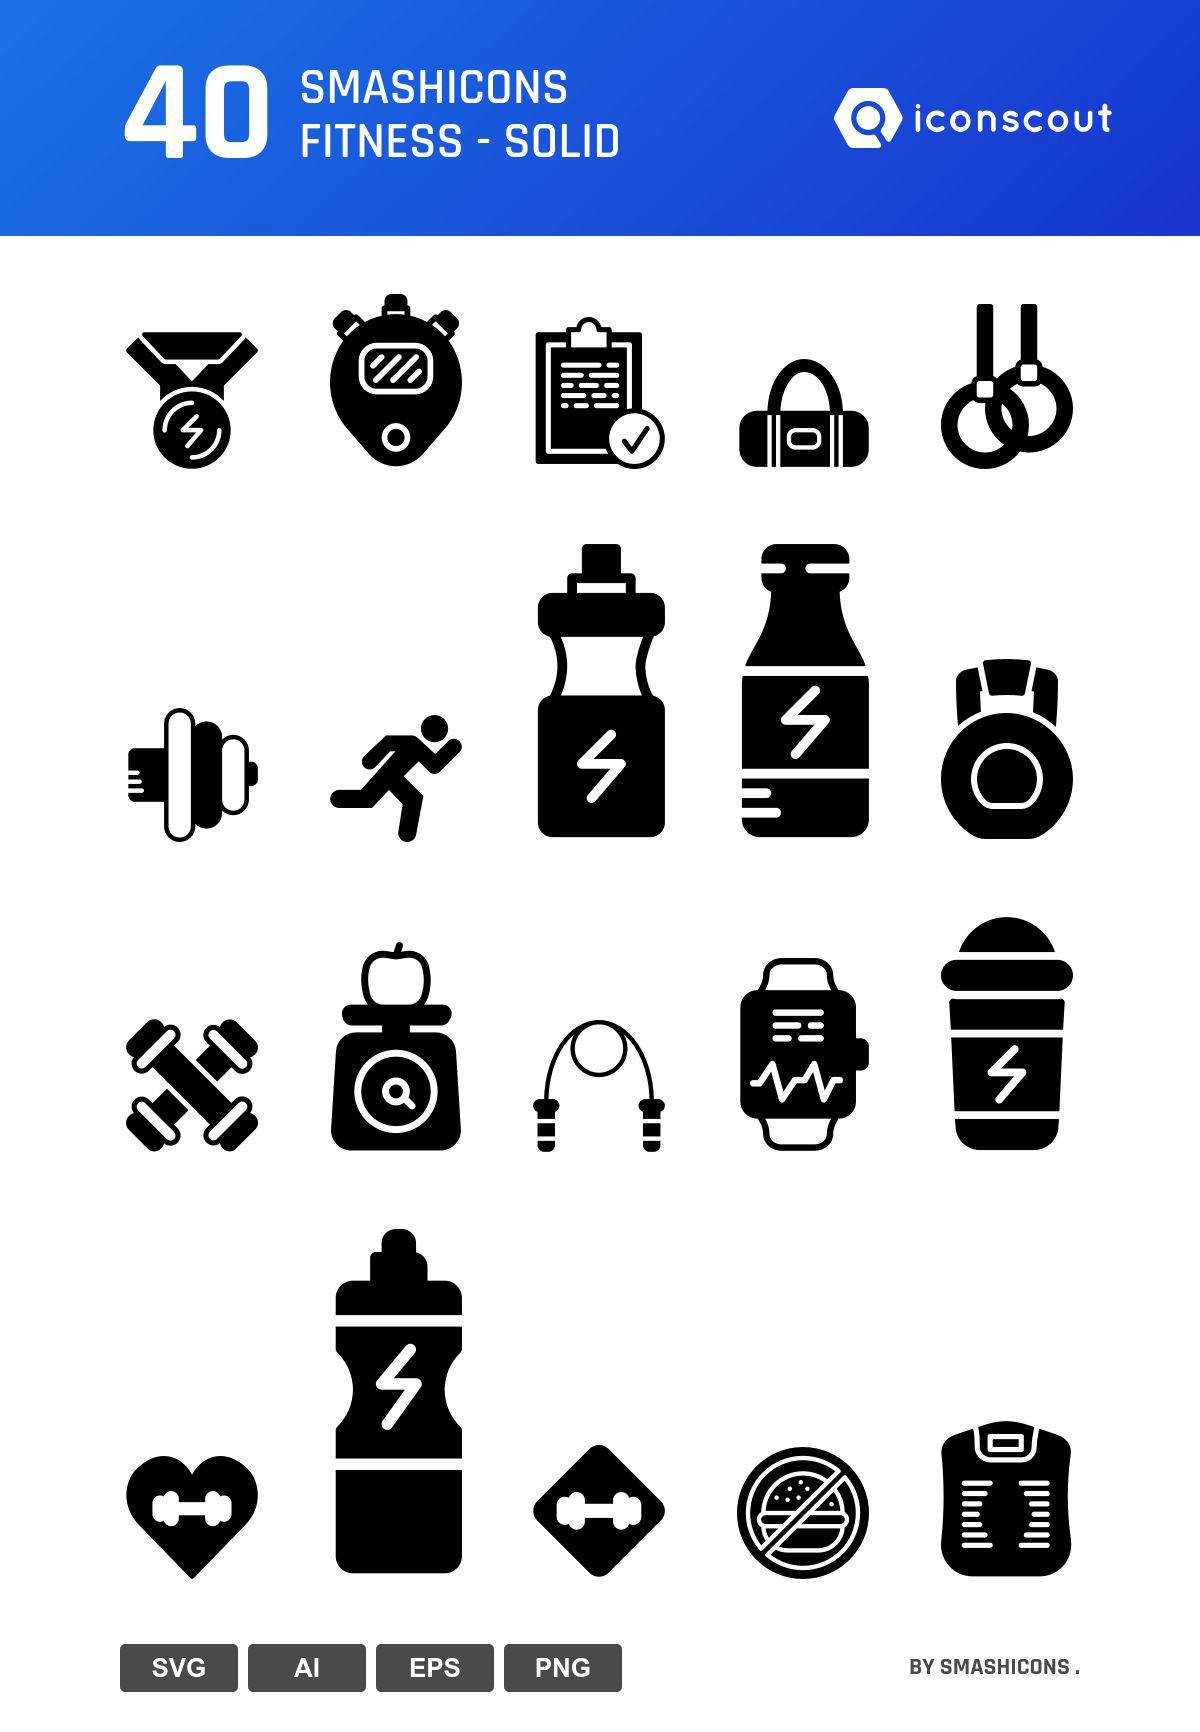 Smashicons Fitness - Solid icons by Smashicons .